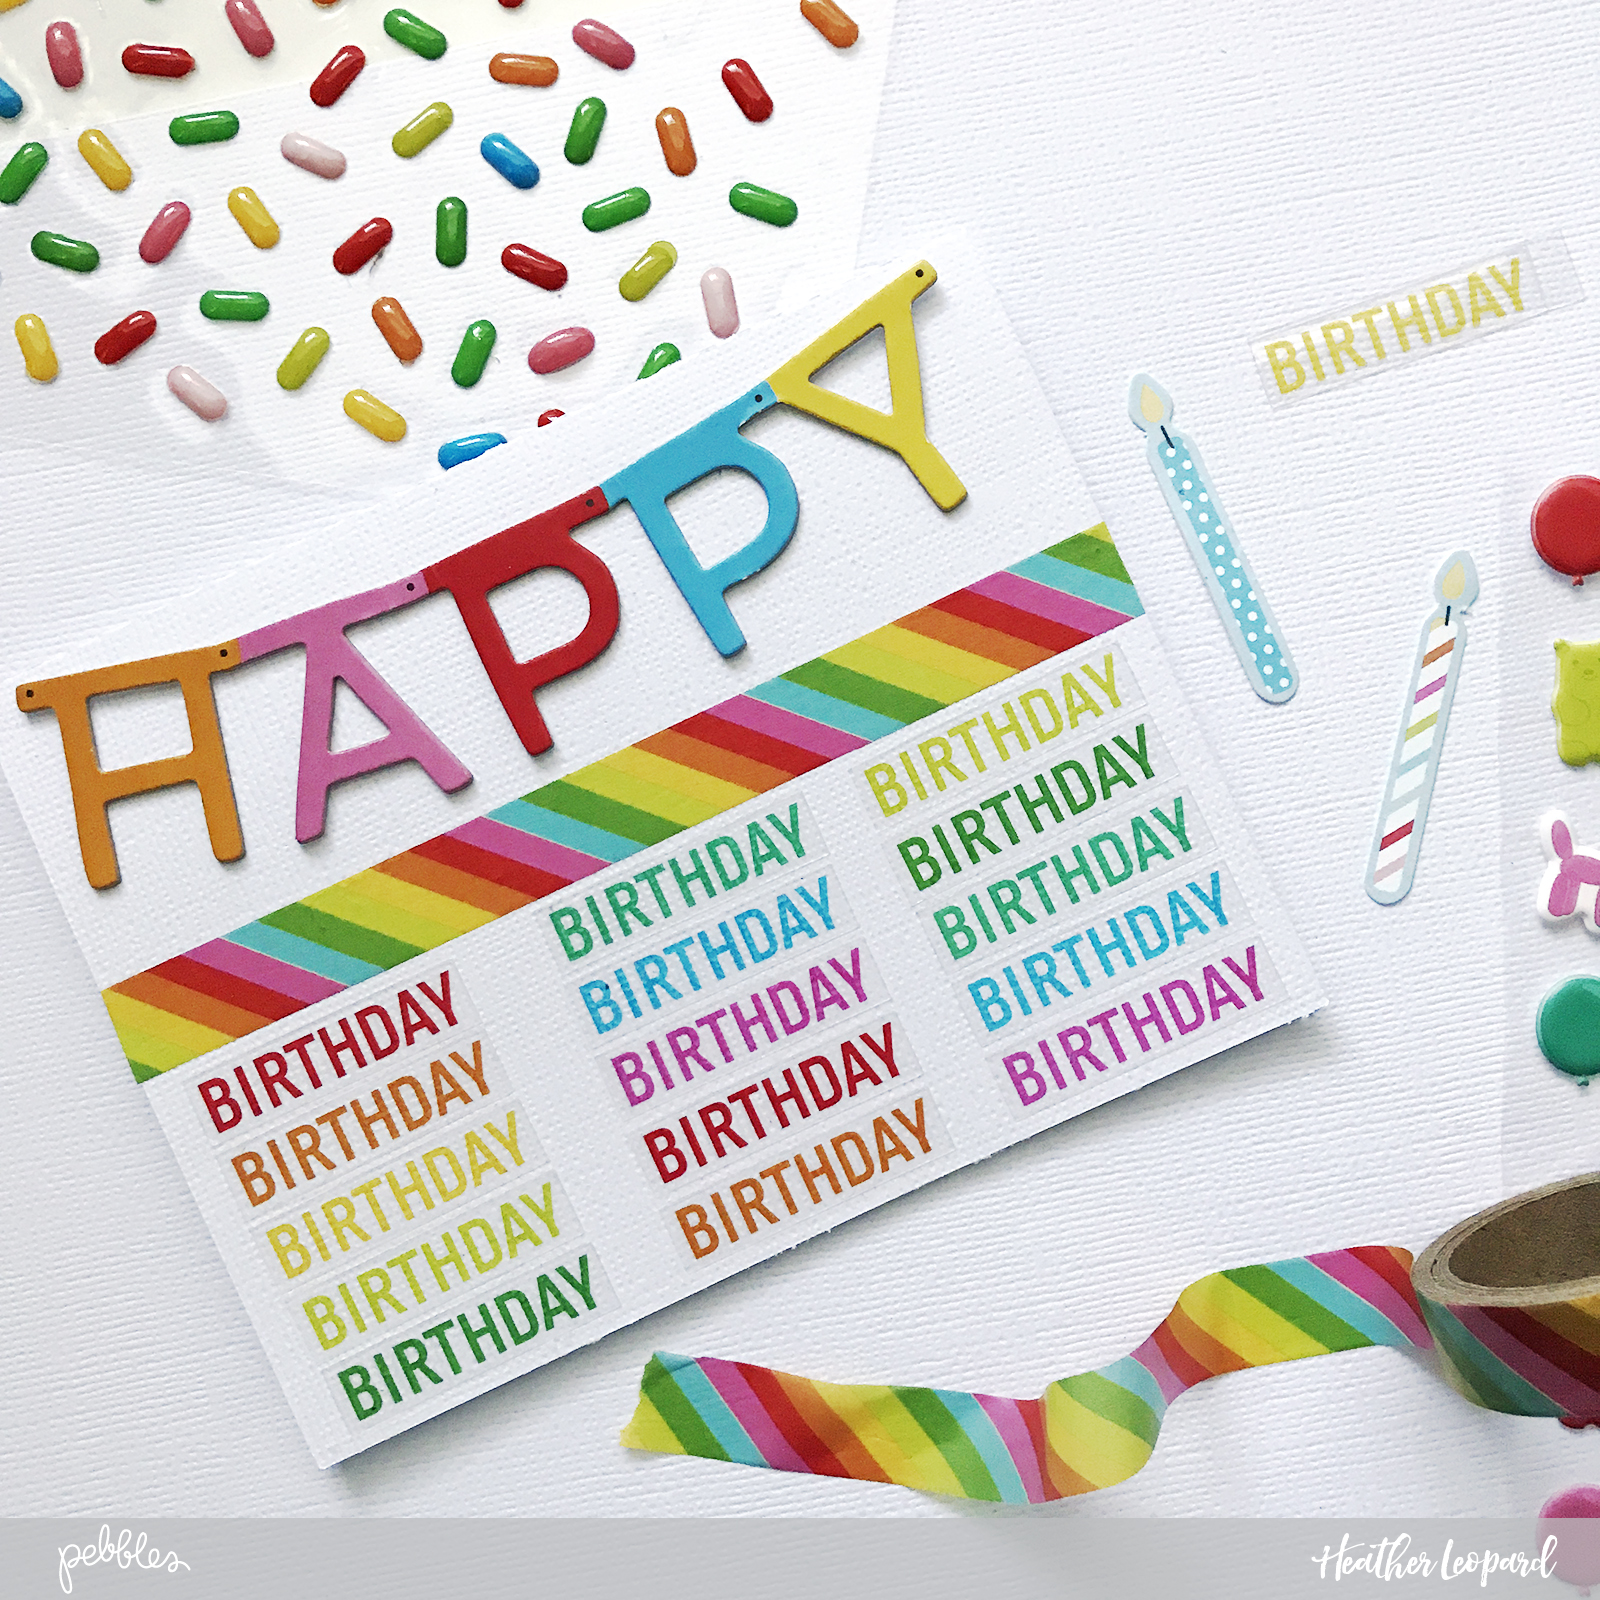 Birthday Card set by @heatherleopard using @PebblesInc #HappyHooray collection #madewithpebbles #birthday #happybirthday #birthdaycard #birthdaycards